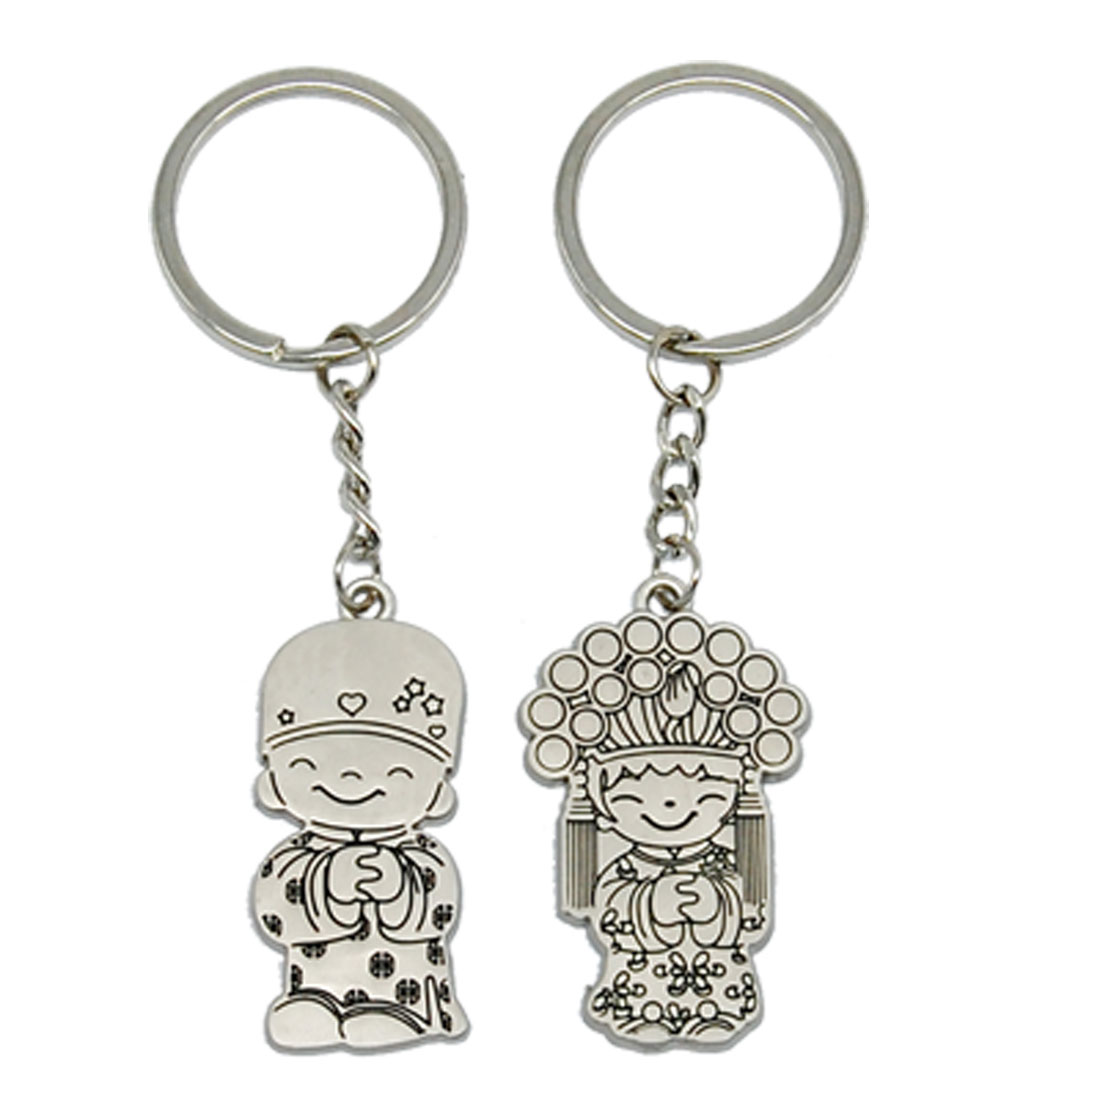 Bridegroom Bride Couple Key Chain Ring Keychain Set